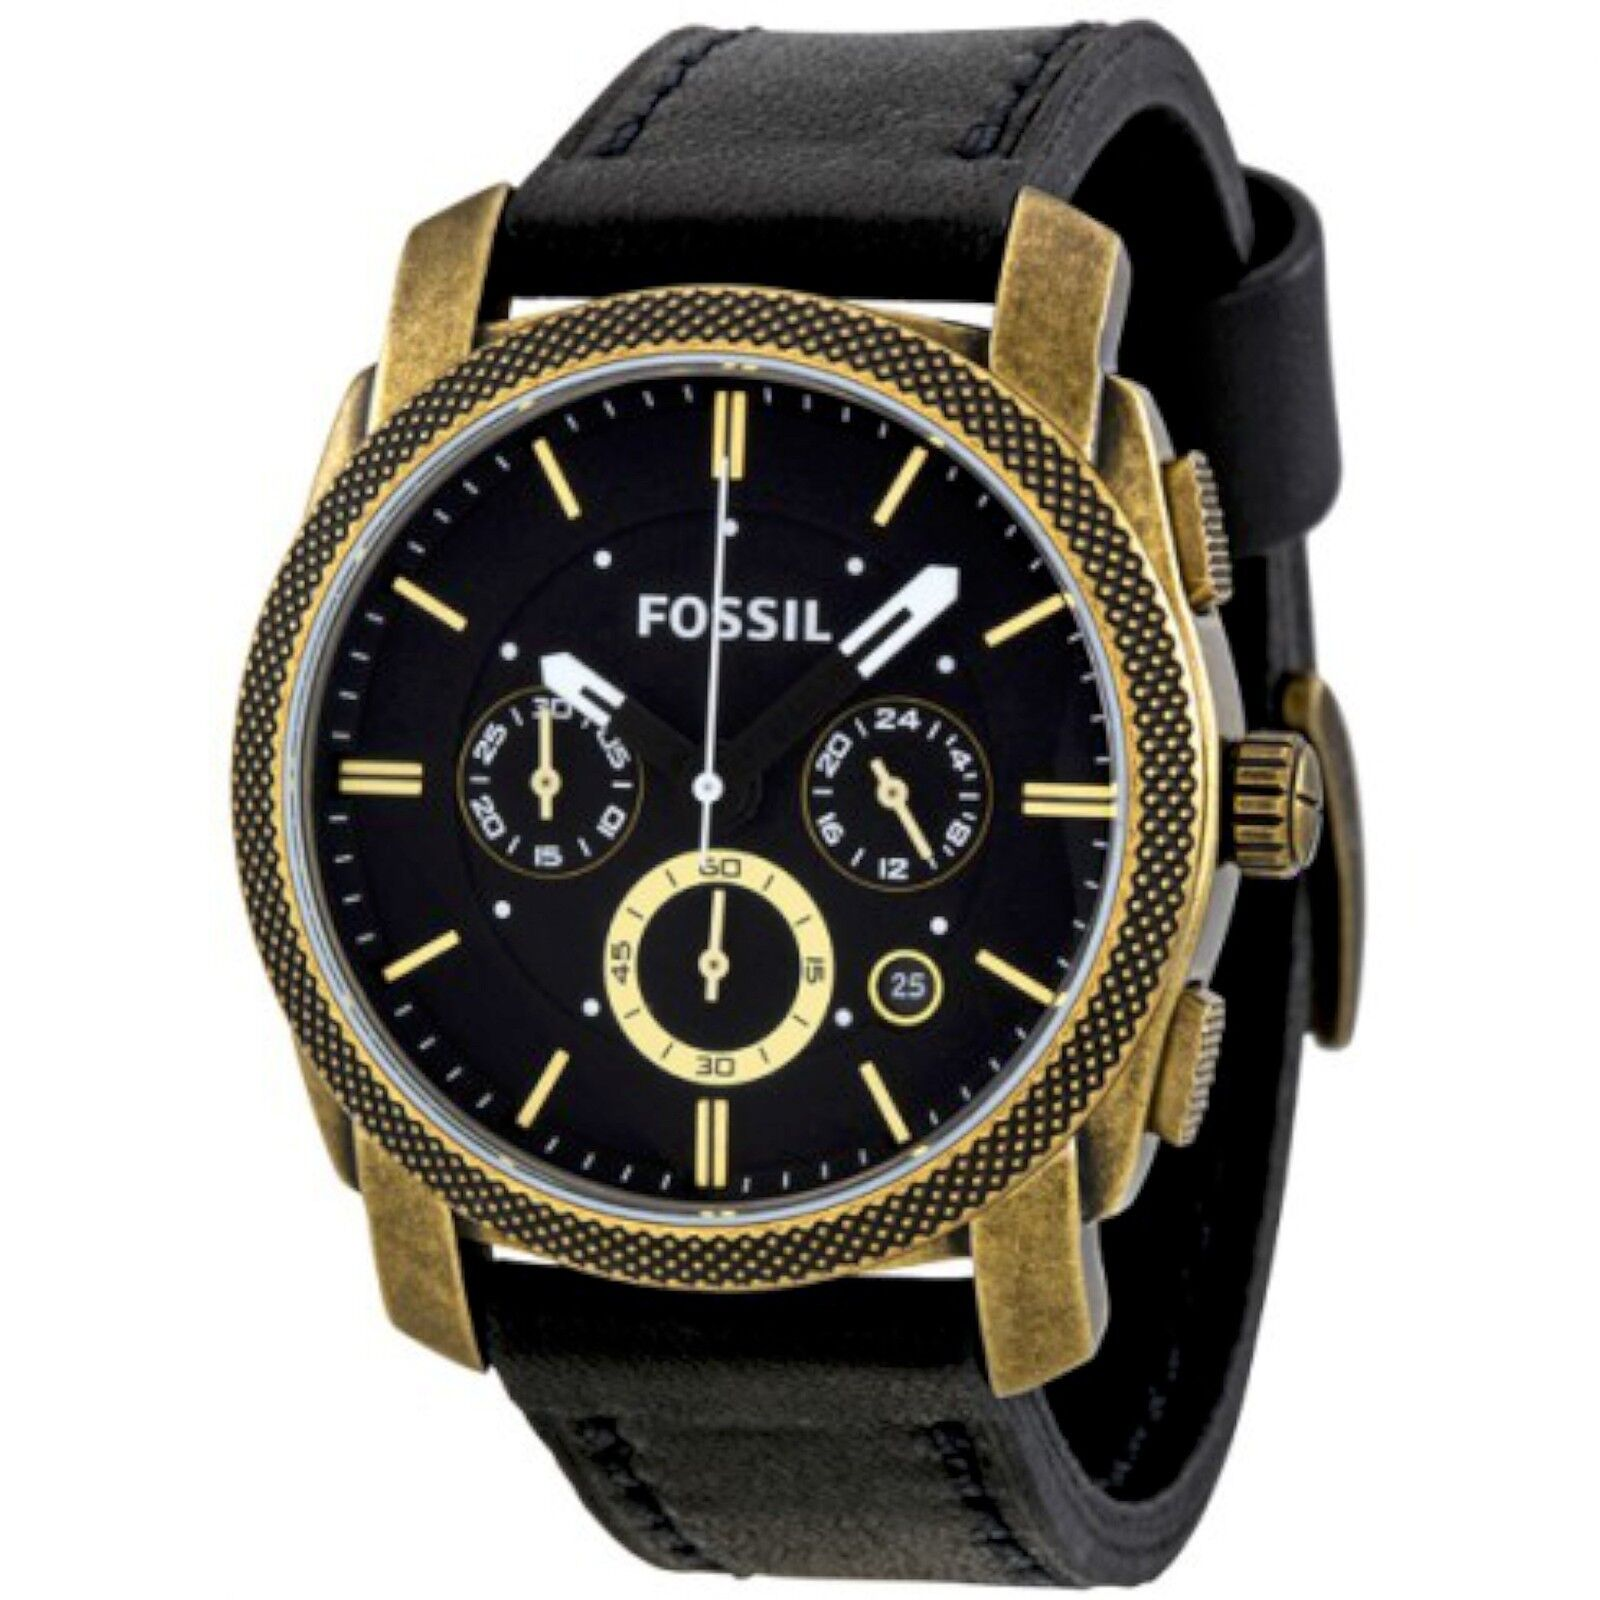 pdpzoom grant brown aemresponsive products main watch en watches leather chronograph sku fossil us